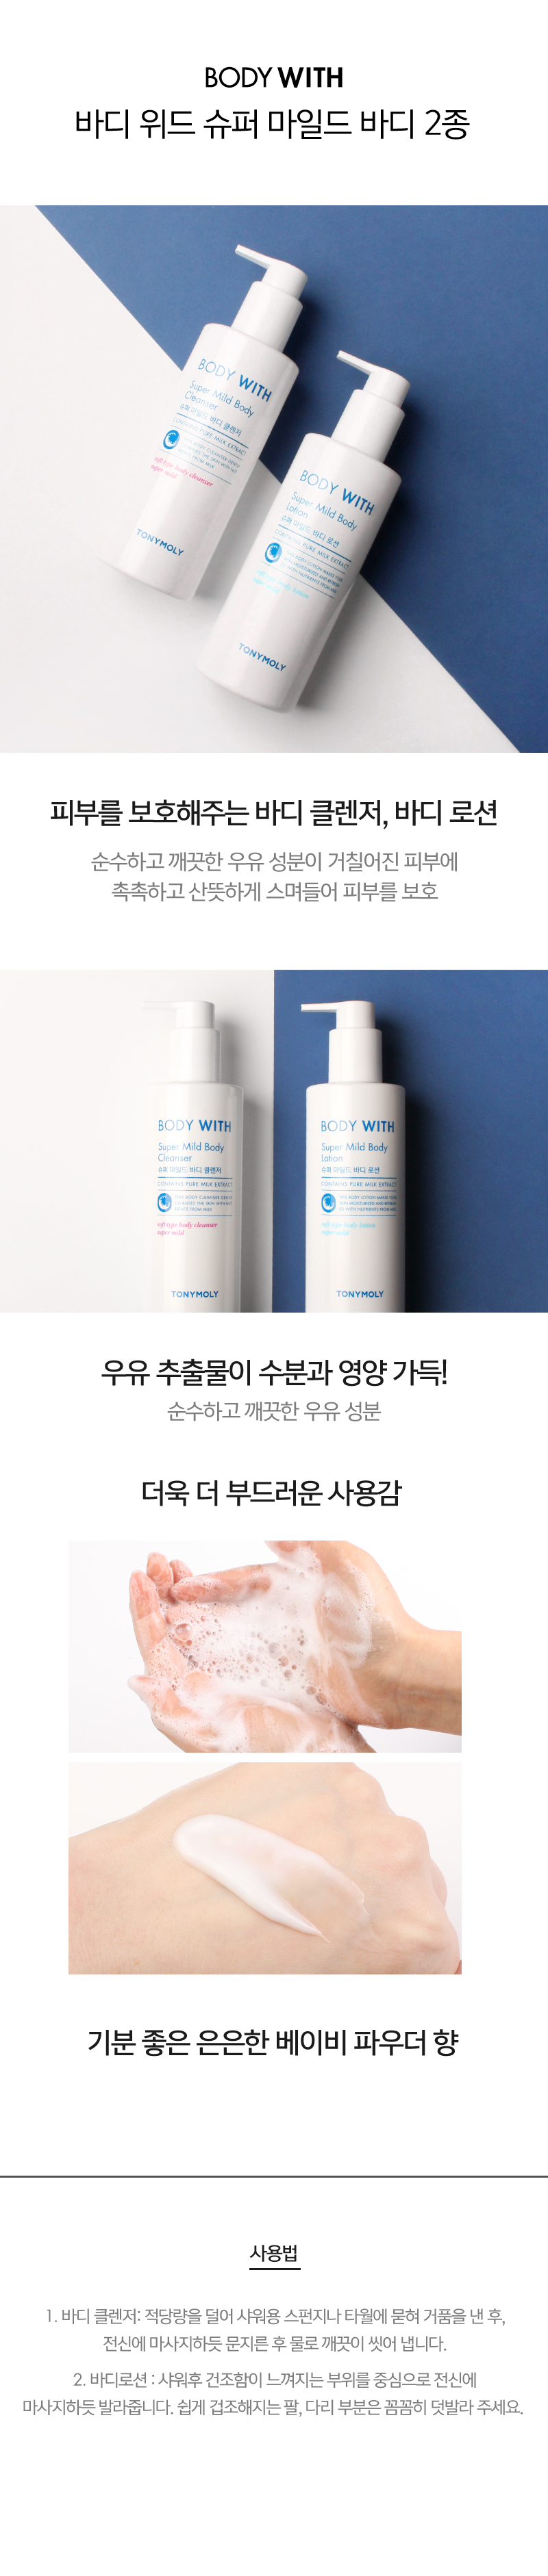 Tony Moly Body With Super Mild Body Cleanser 300ml malaysia singapore indonesia